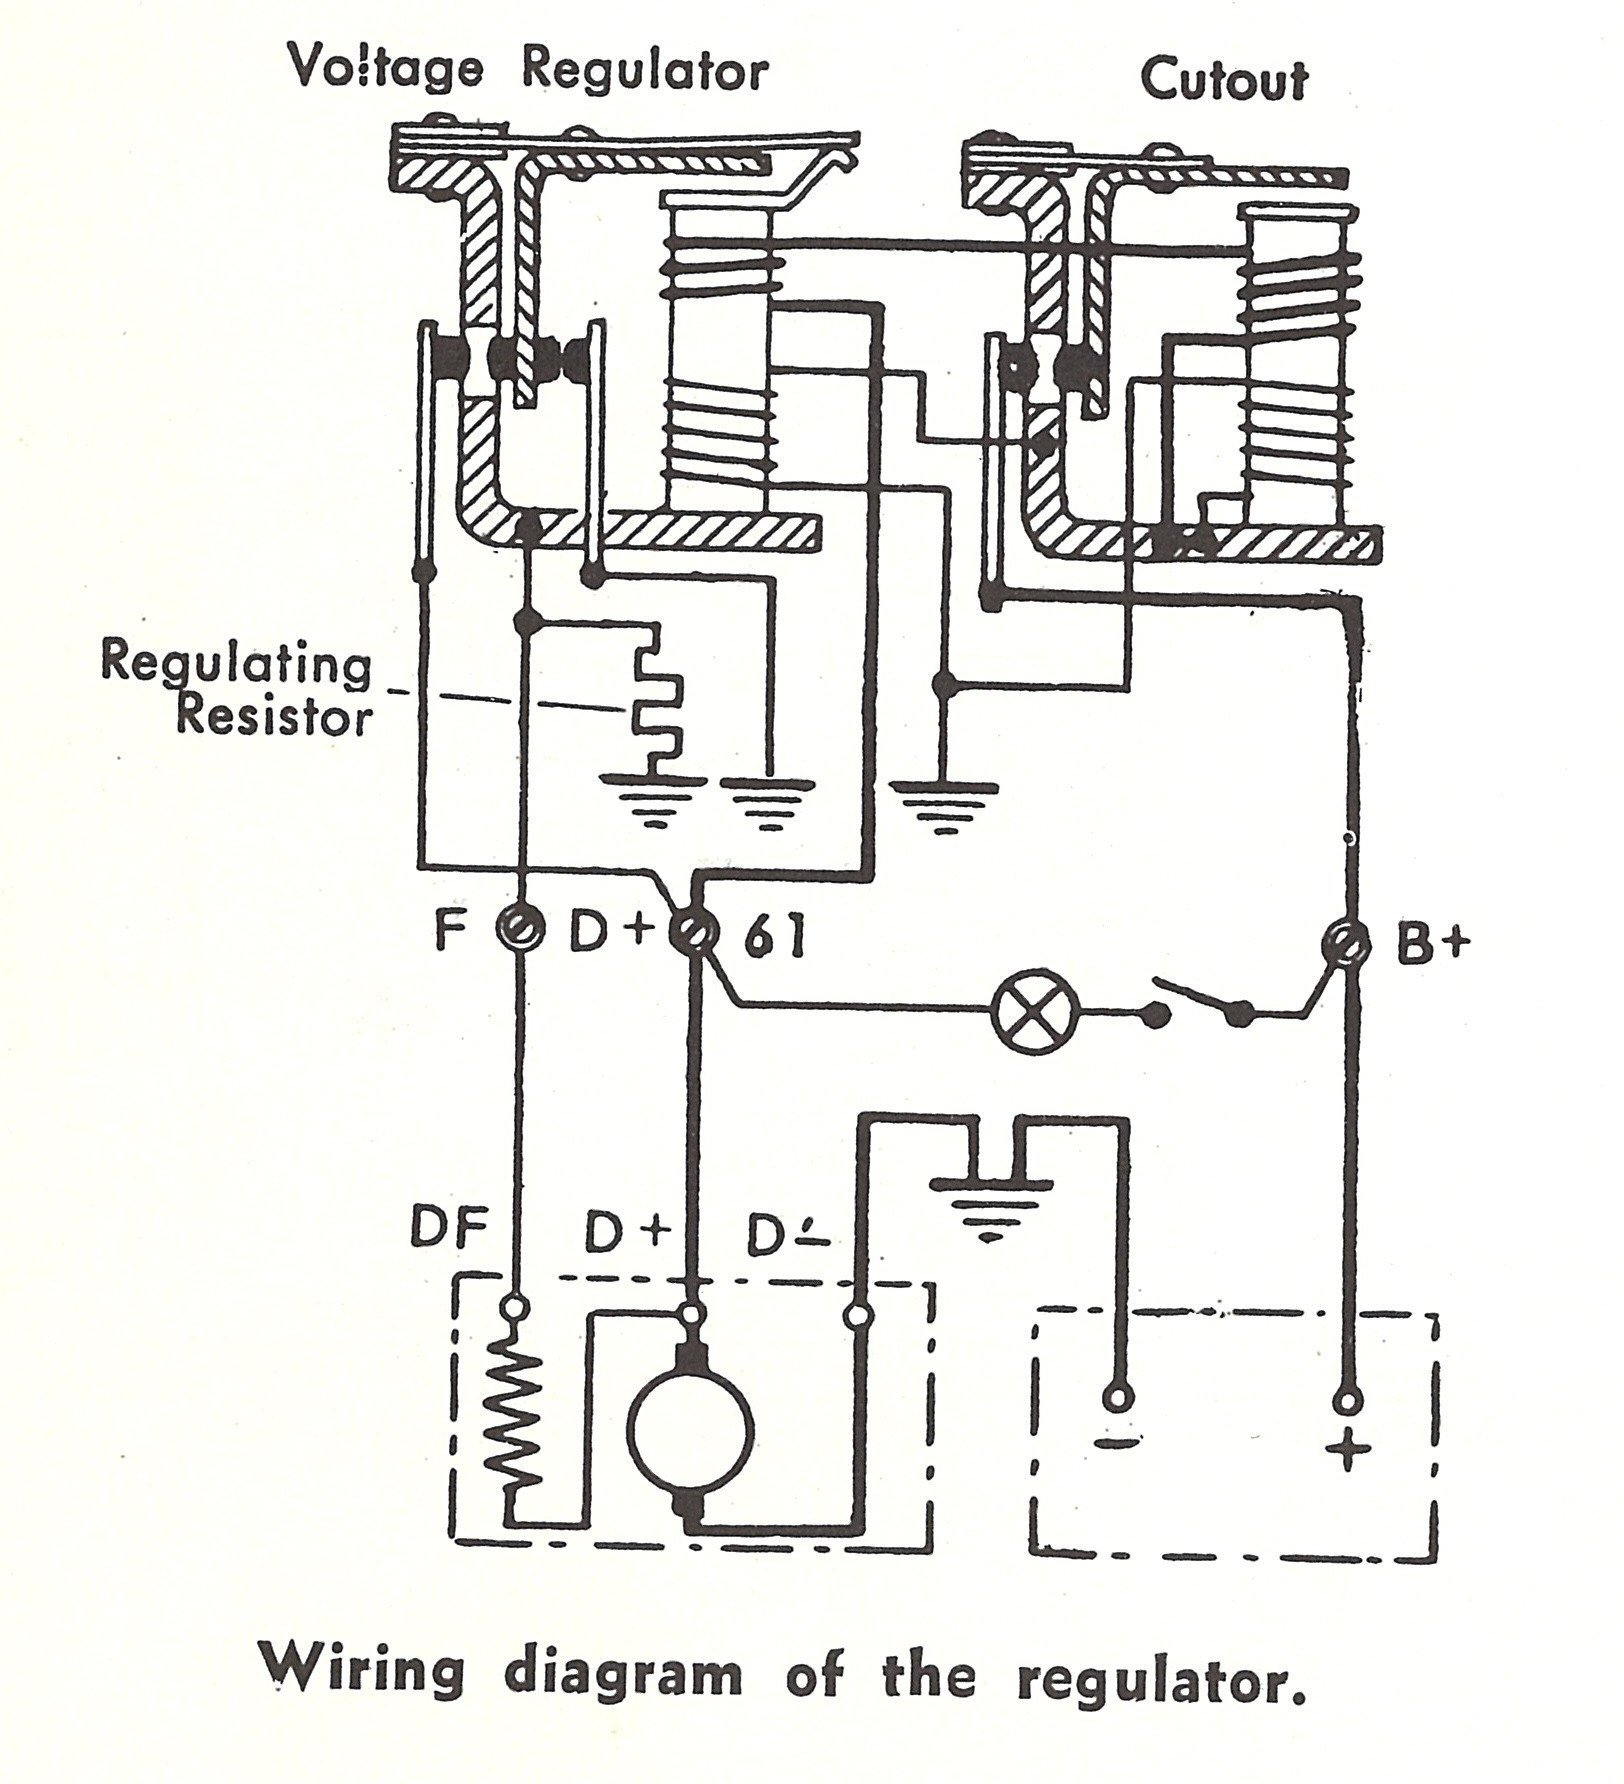 Voltage Regulator Diagram Closeup on vw alternator voltage regulator wiring diagram